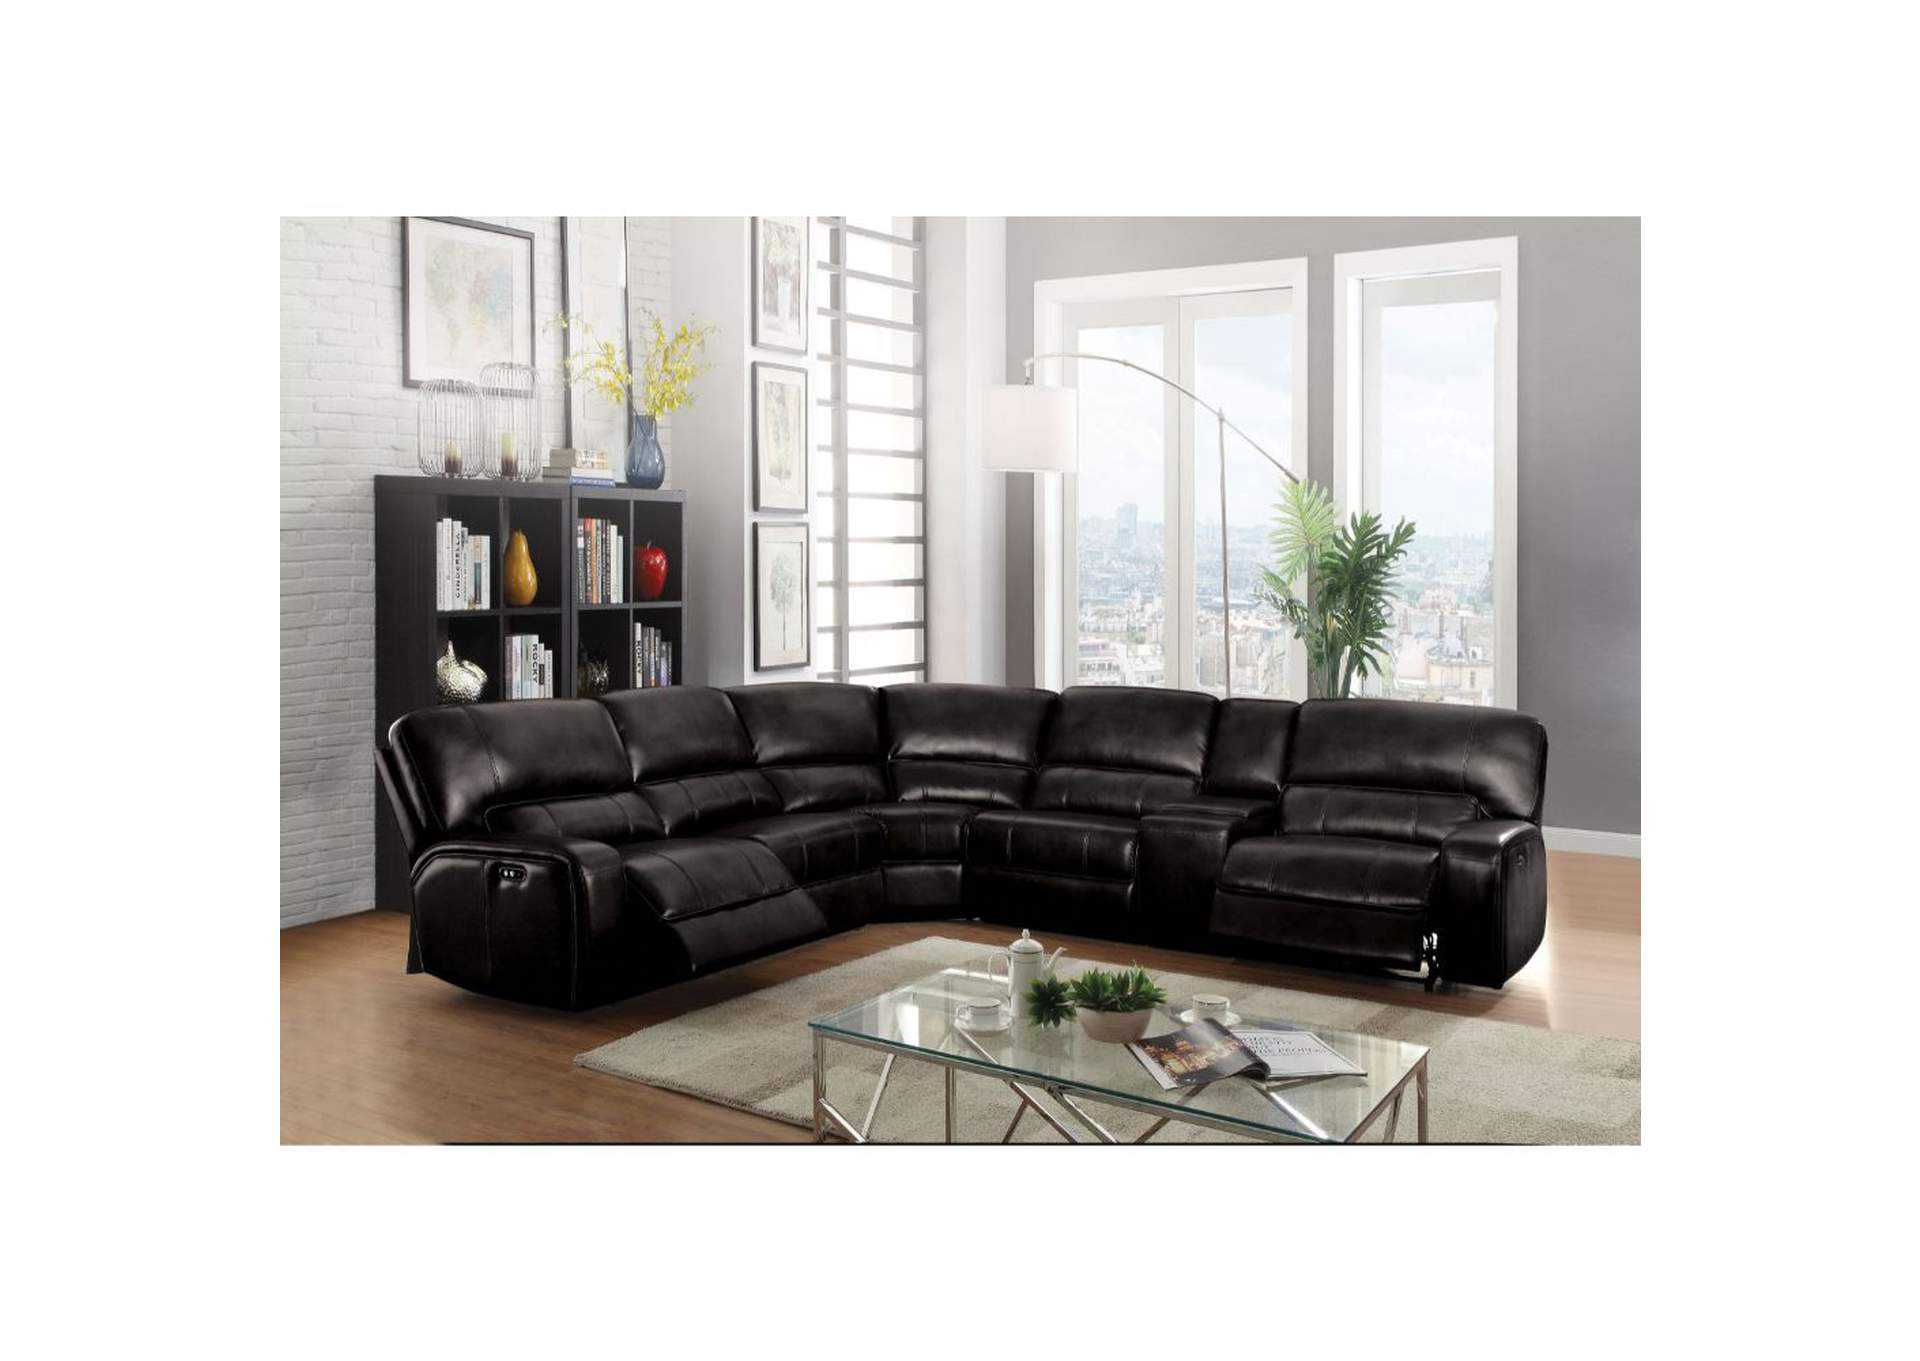 Wondrous Furniture Express Hawaii Saul Black Leather Aire Power Alphanode Cool Chair Designs And Ideas Alphanodeonline